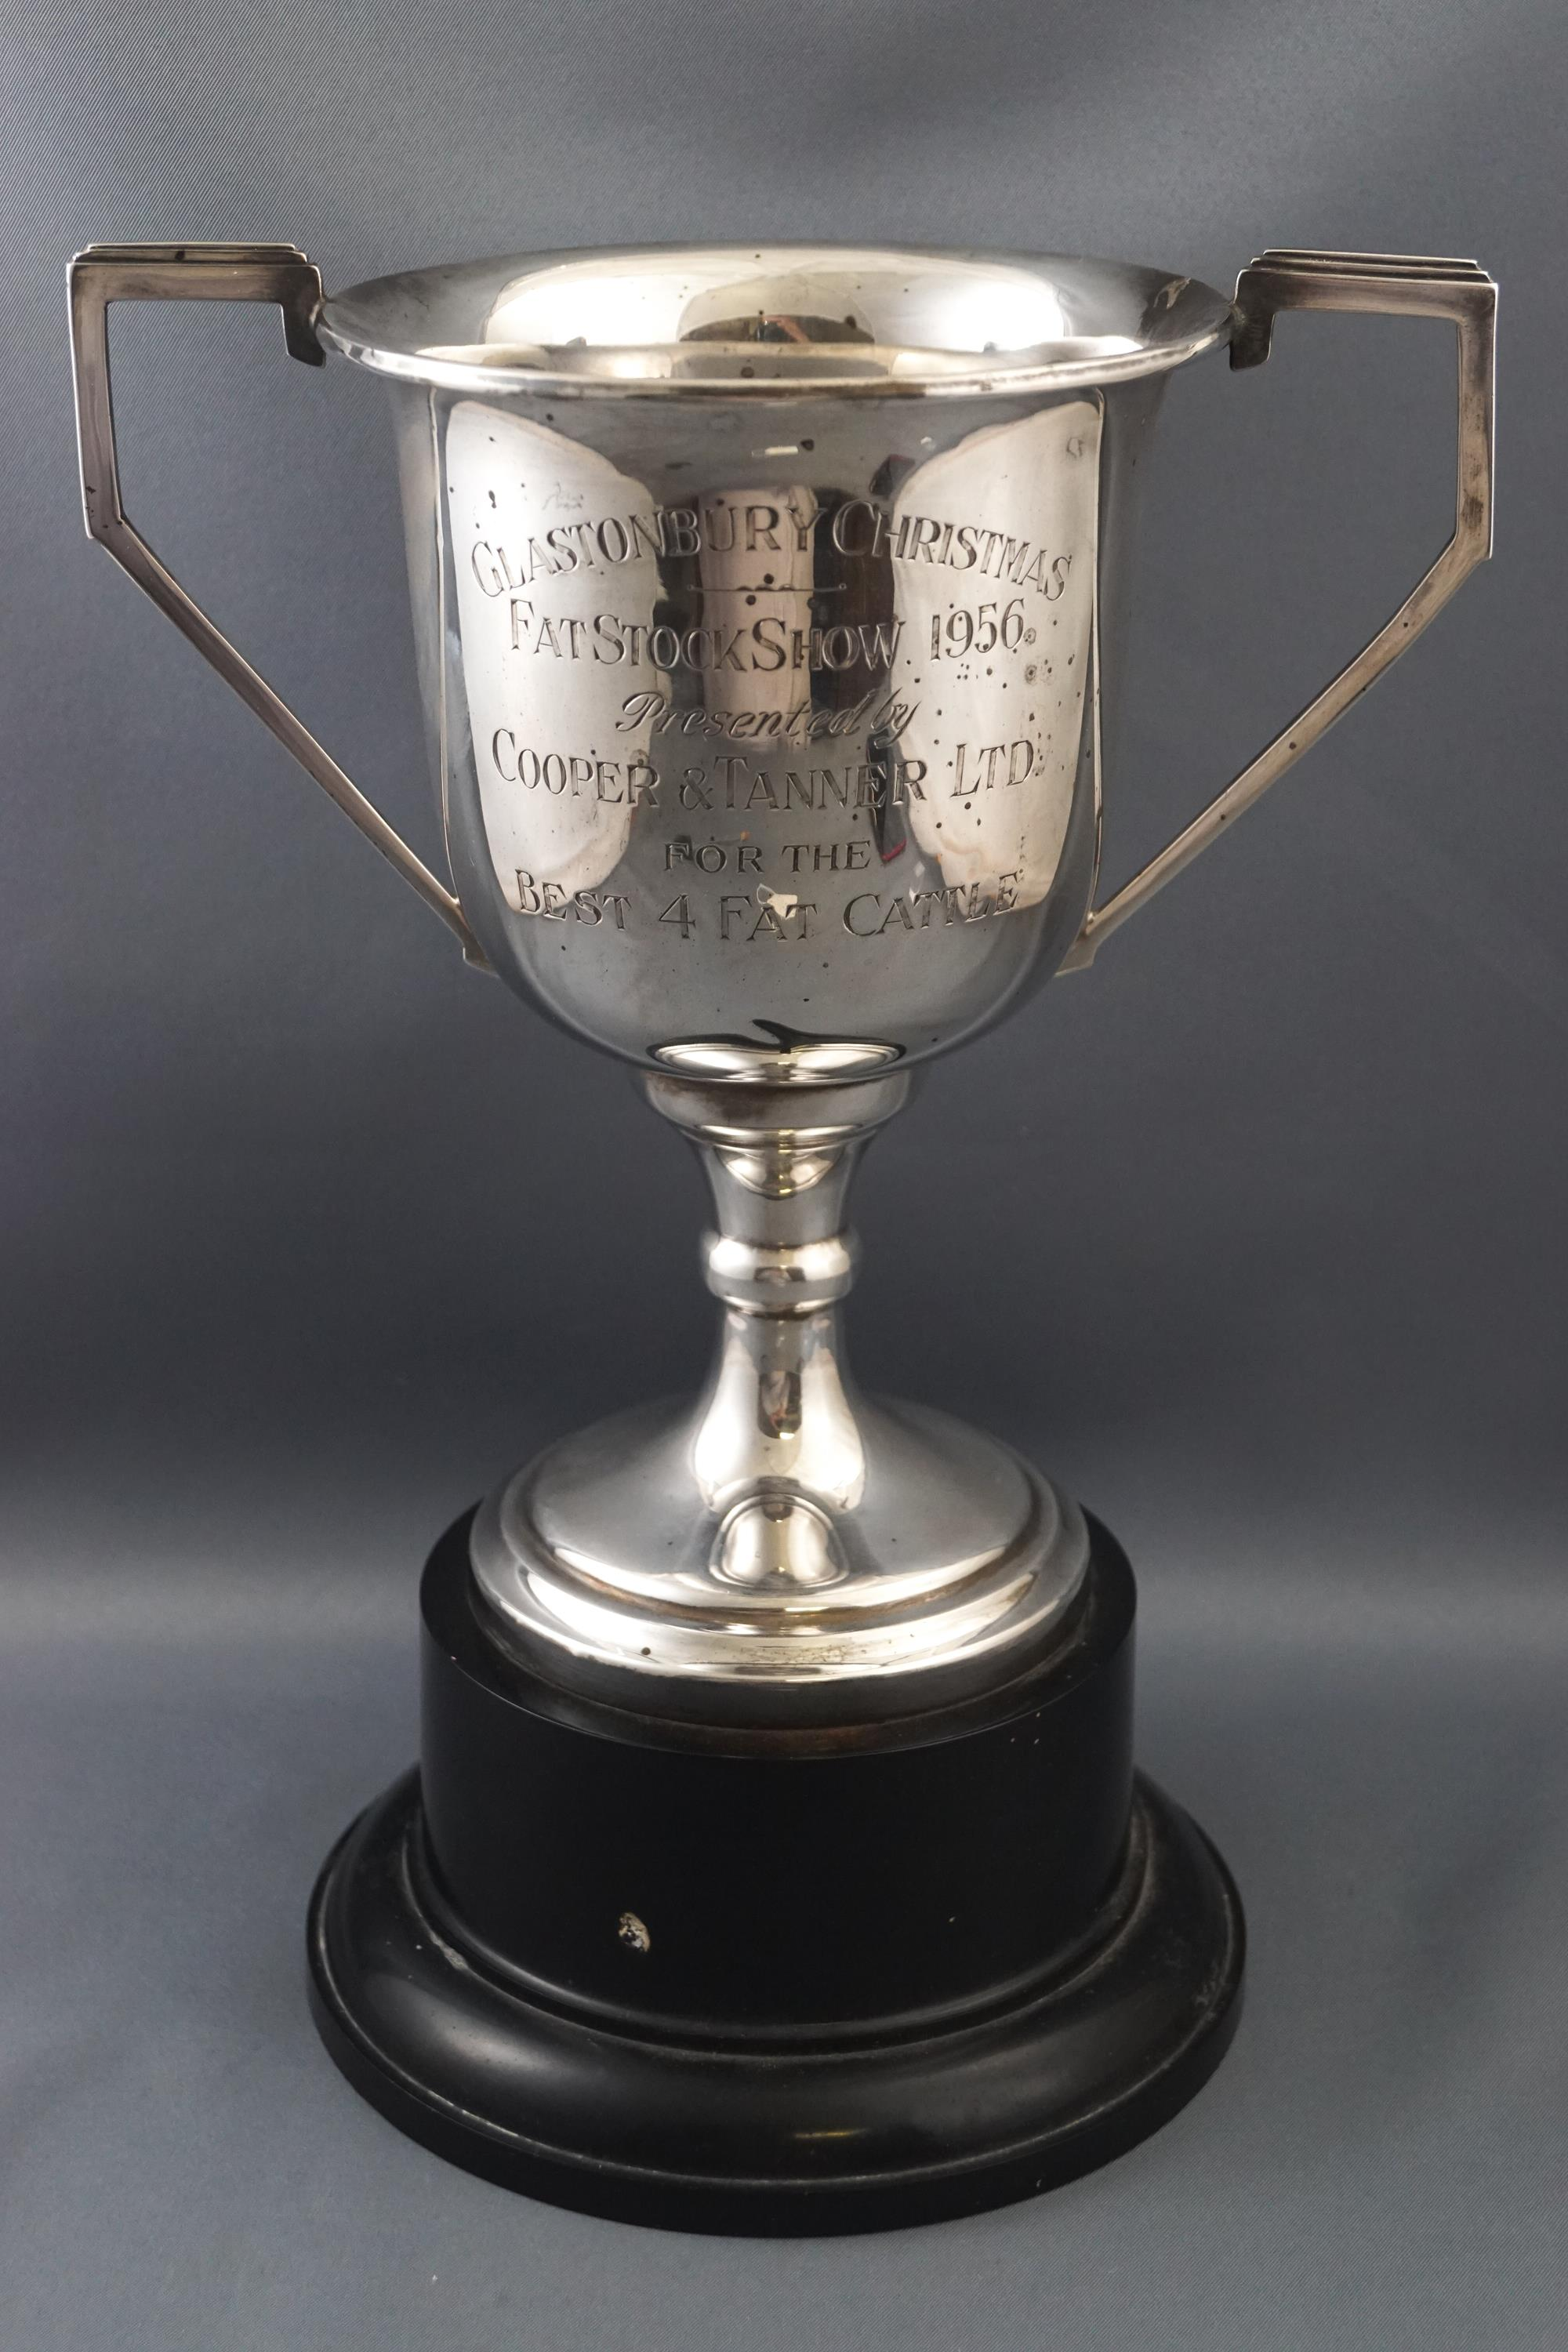 Lot 10 - A silver Glastonbury Christmas Fat Stock Show two handled trophy cup, dated 1956, 18cm high,